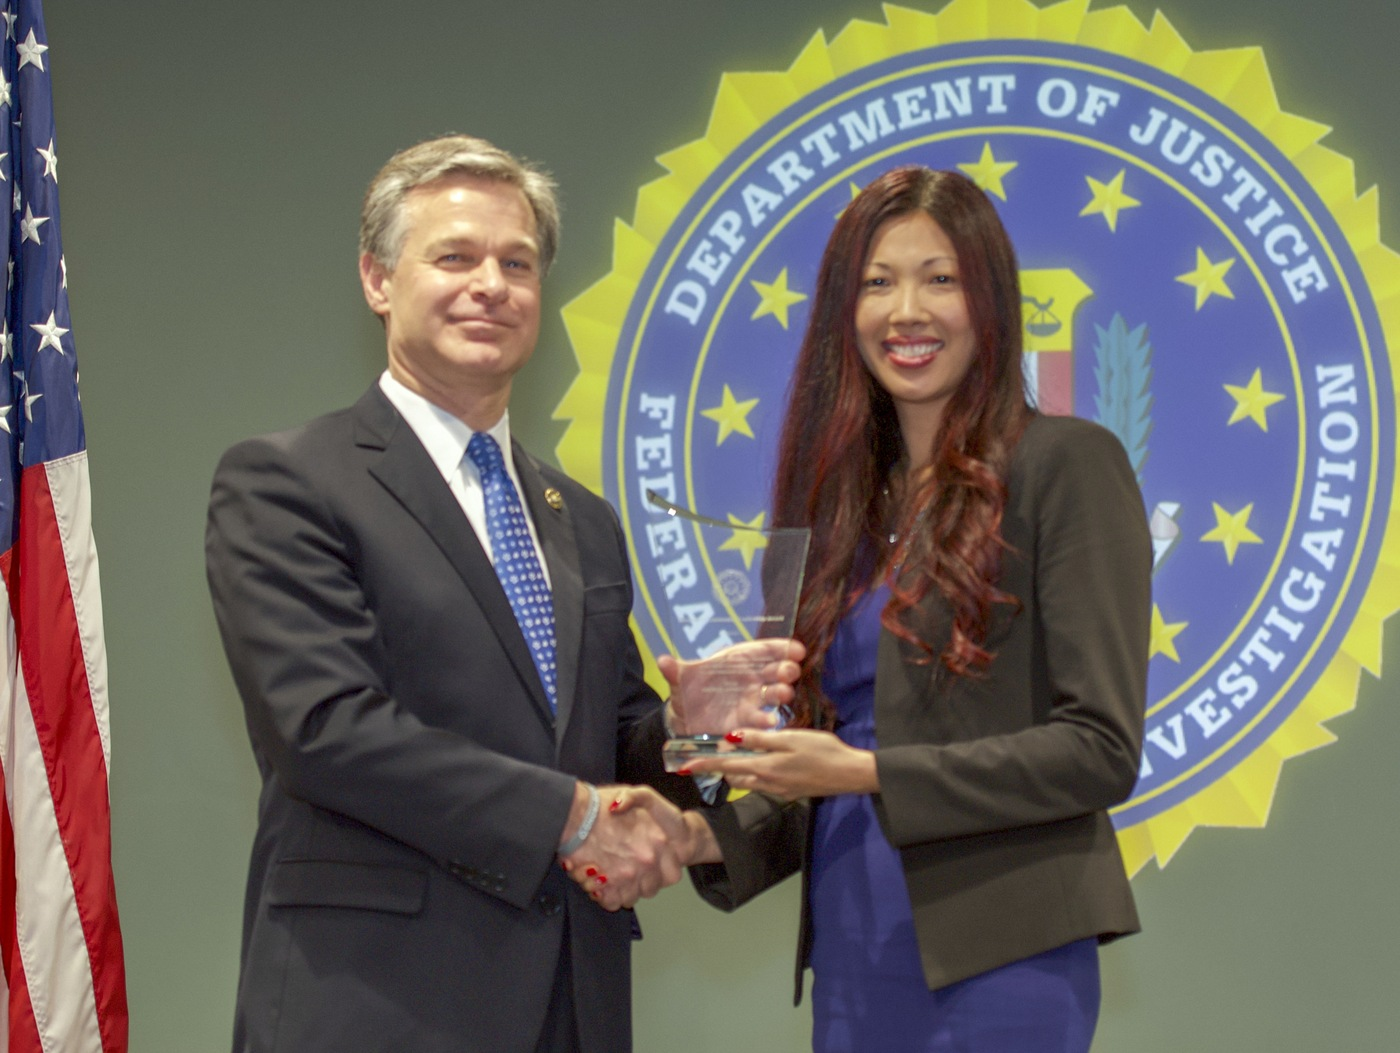 FBI Director Christopher Wray presents San Diego Division recipient Sandy Moul with the Director's Community Leadership Award (DCLA) at a ceremony at FBI Headquarters on May 3, 2019.